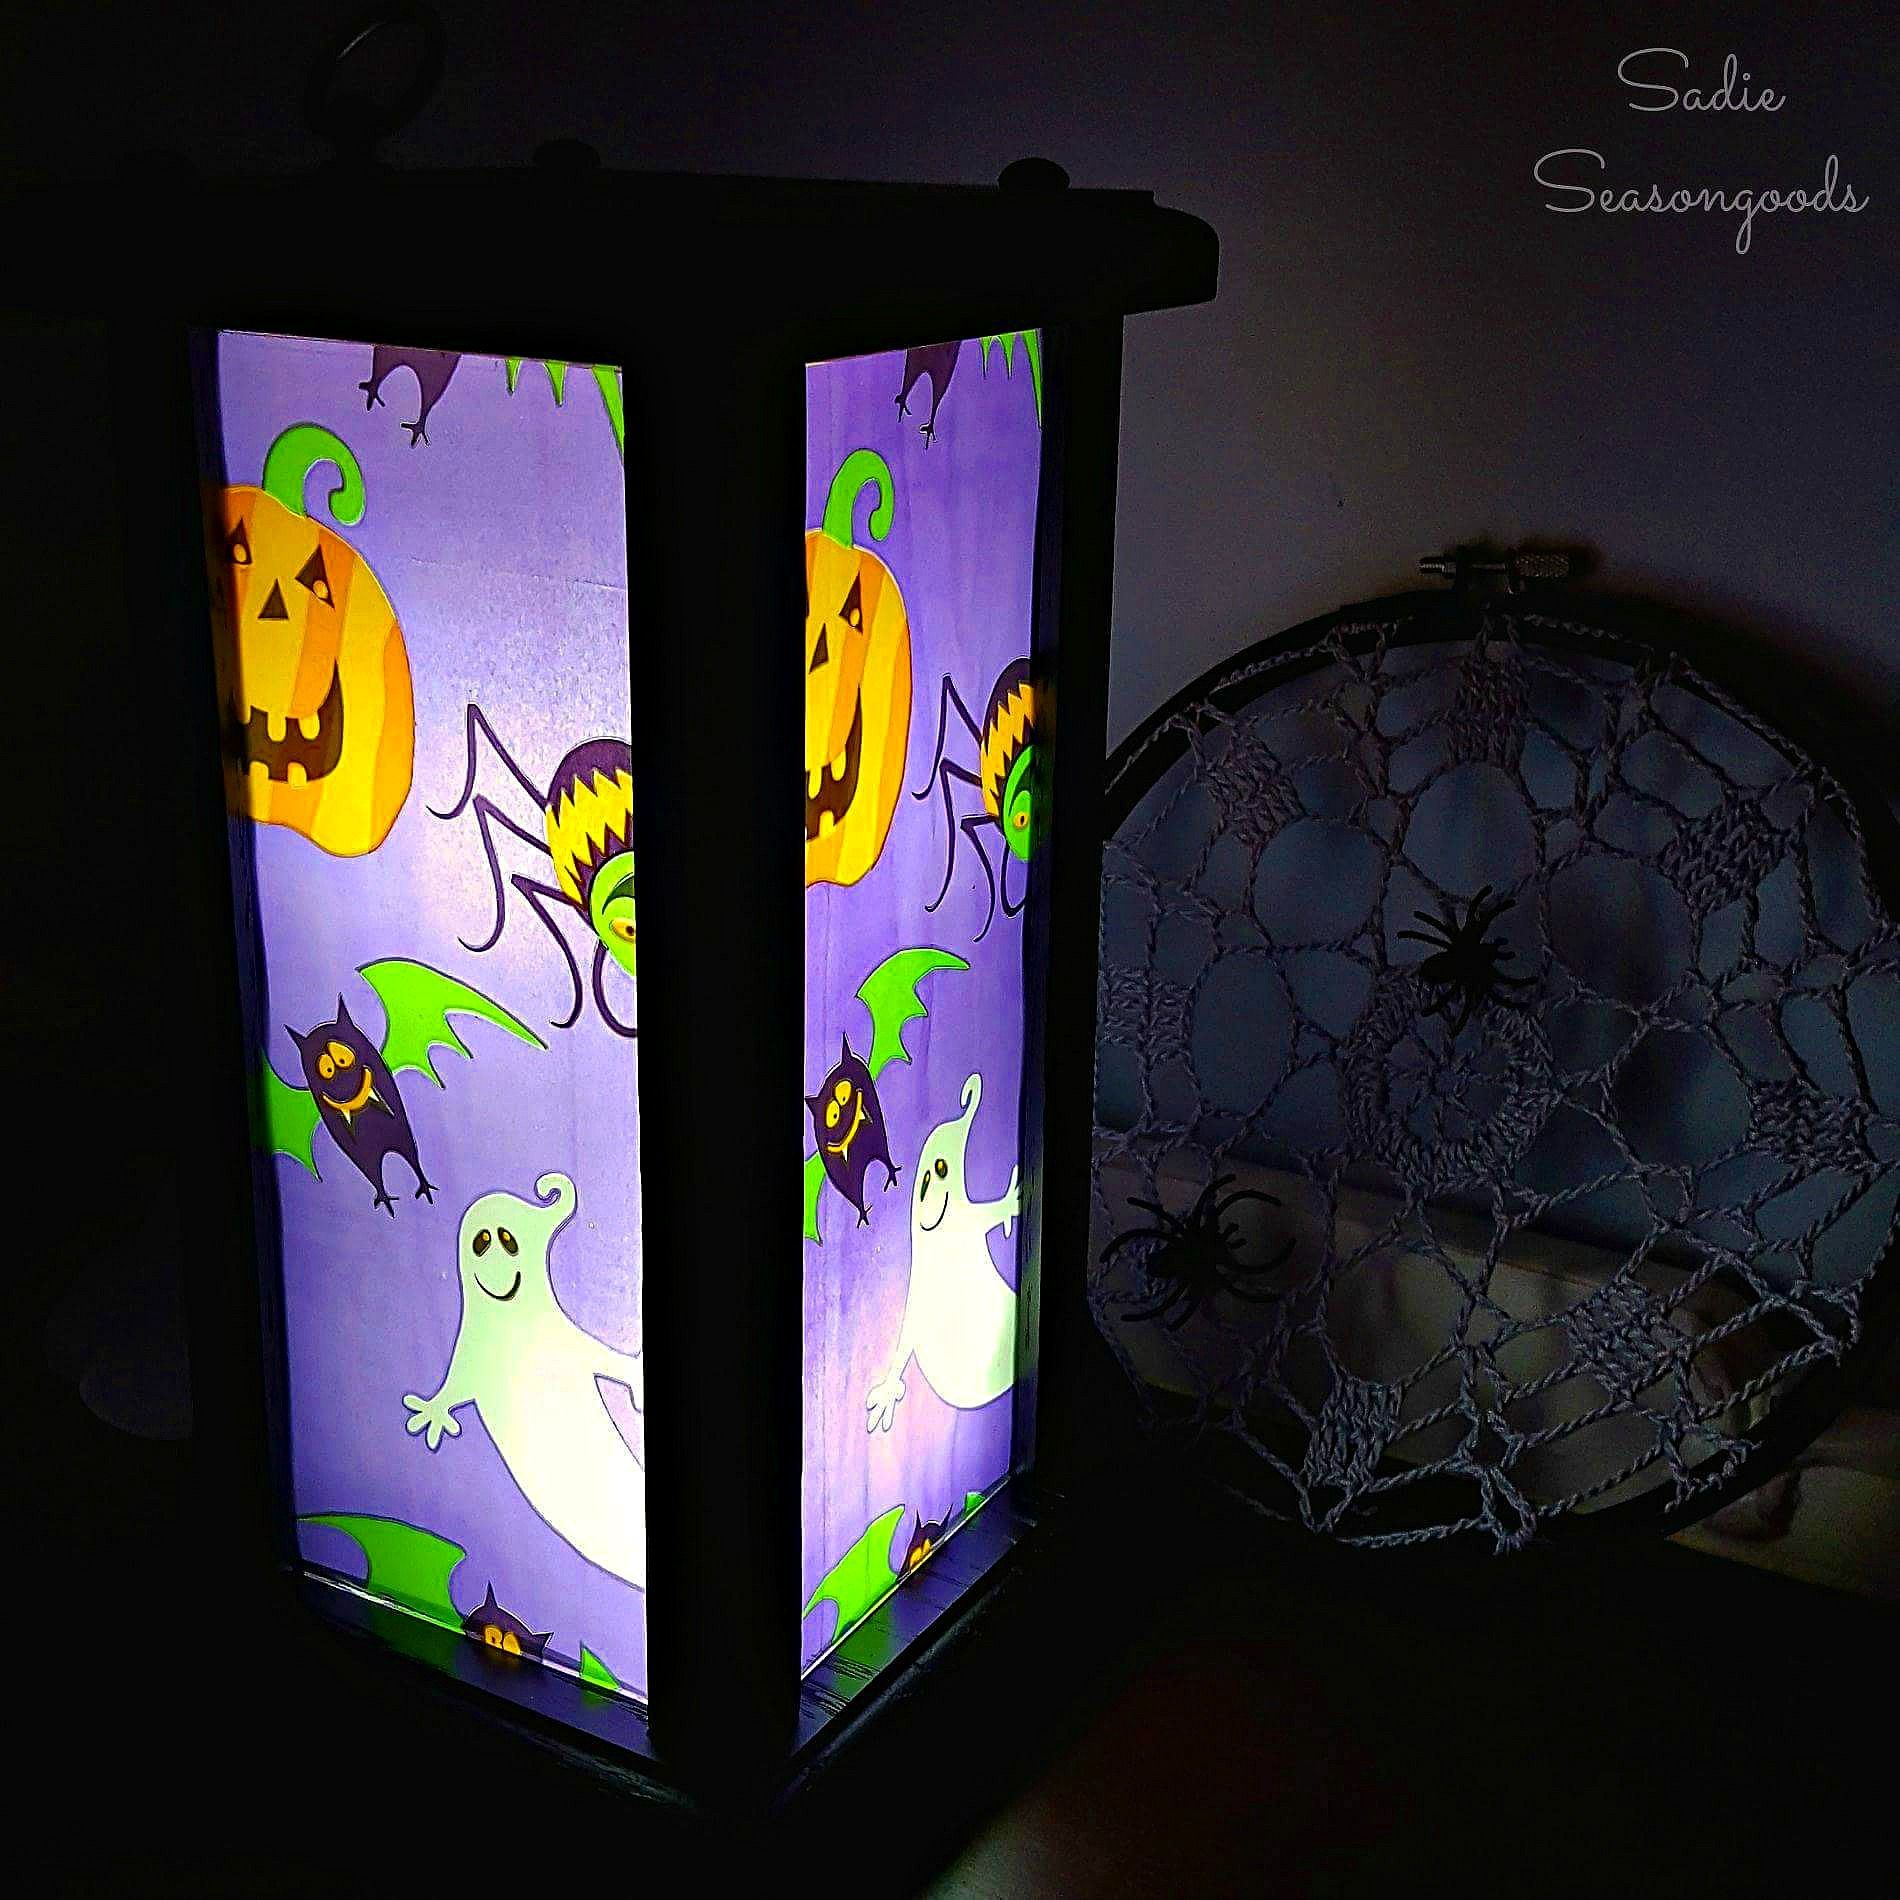 9_DIY_Halloween_lantern_from_outdated_candle_decor_from_Goodwill_Sadie_Seasongoods